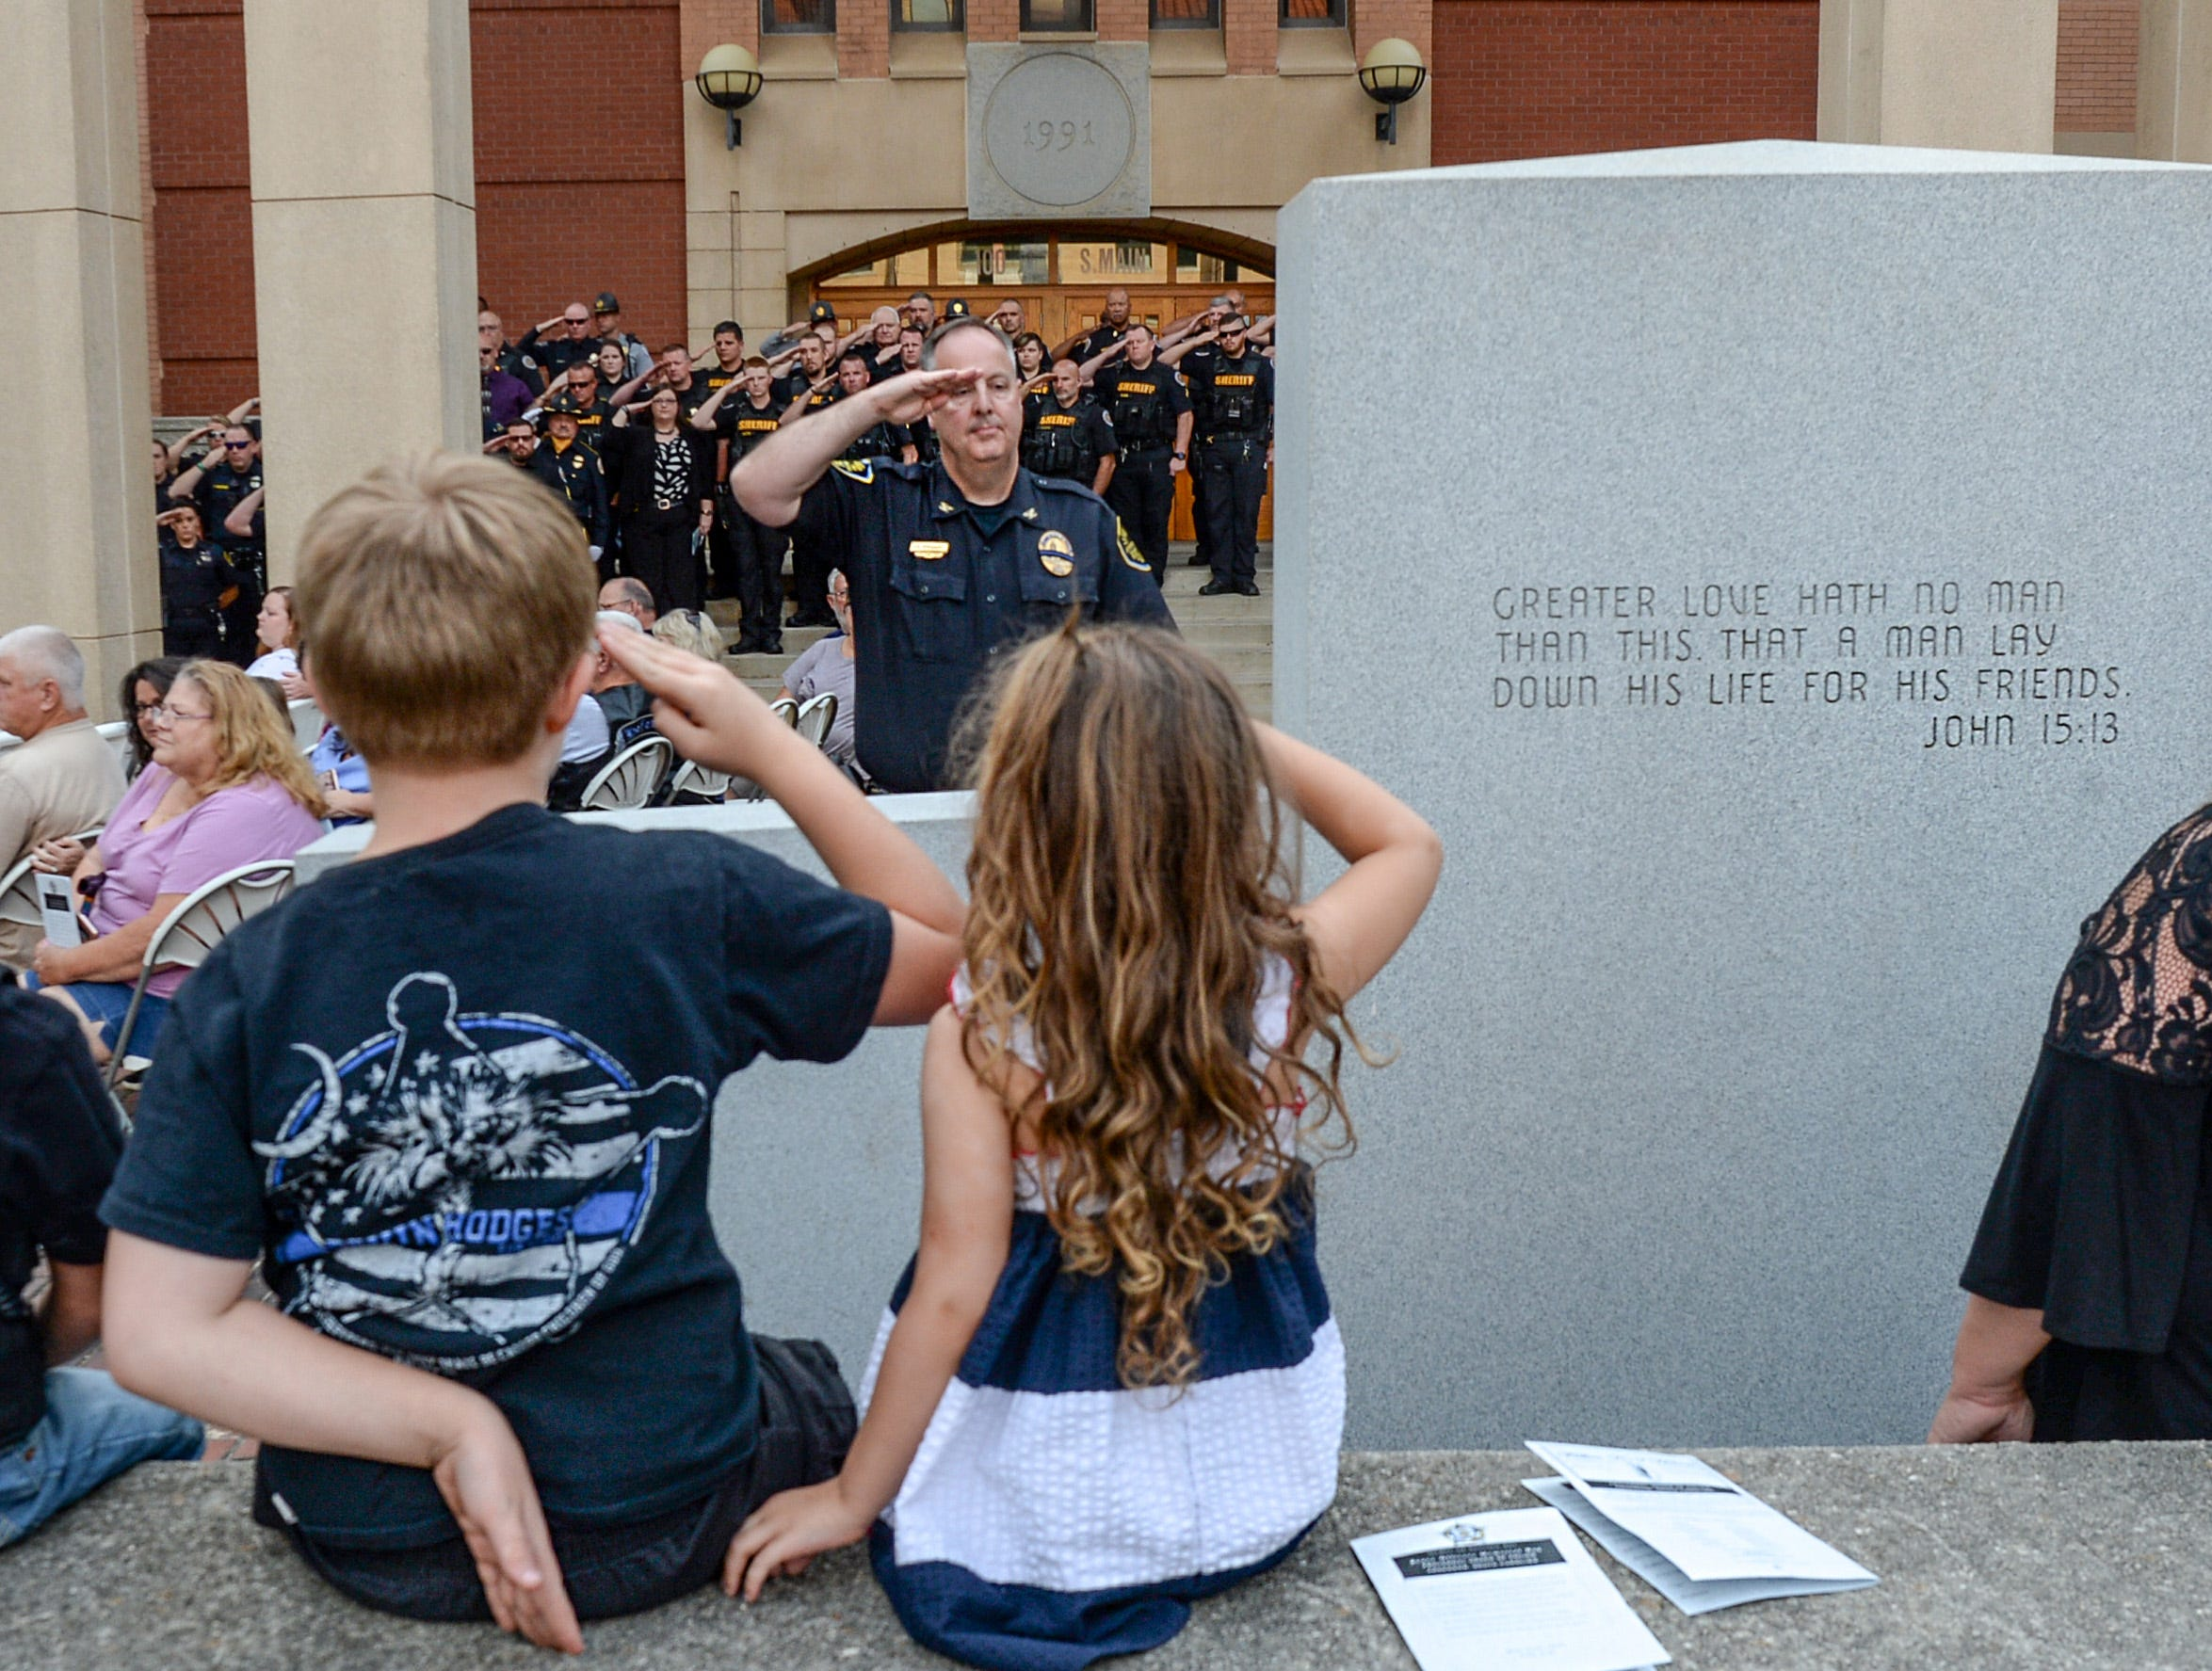 James Hodges, left, 9, and his sister Diana Hodges, 4, salute with Chief of Police Jim Stewart at the police monument in front of the Anderson County courthouse during the 2019 Peace Officer Memorial Service Wednesday May 15, 2019. People attended to help honor the lives of officers lost in the line of duty. Deputy Devin Pressley Hodges of the Anderson County Sheriff's office, the father of the two children, died in the line of duty in June 2017.